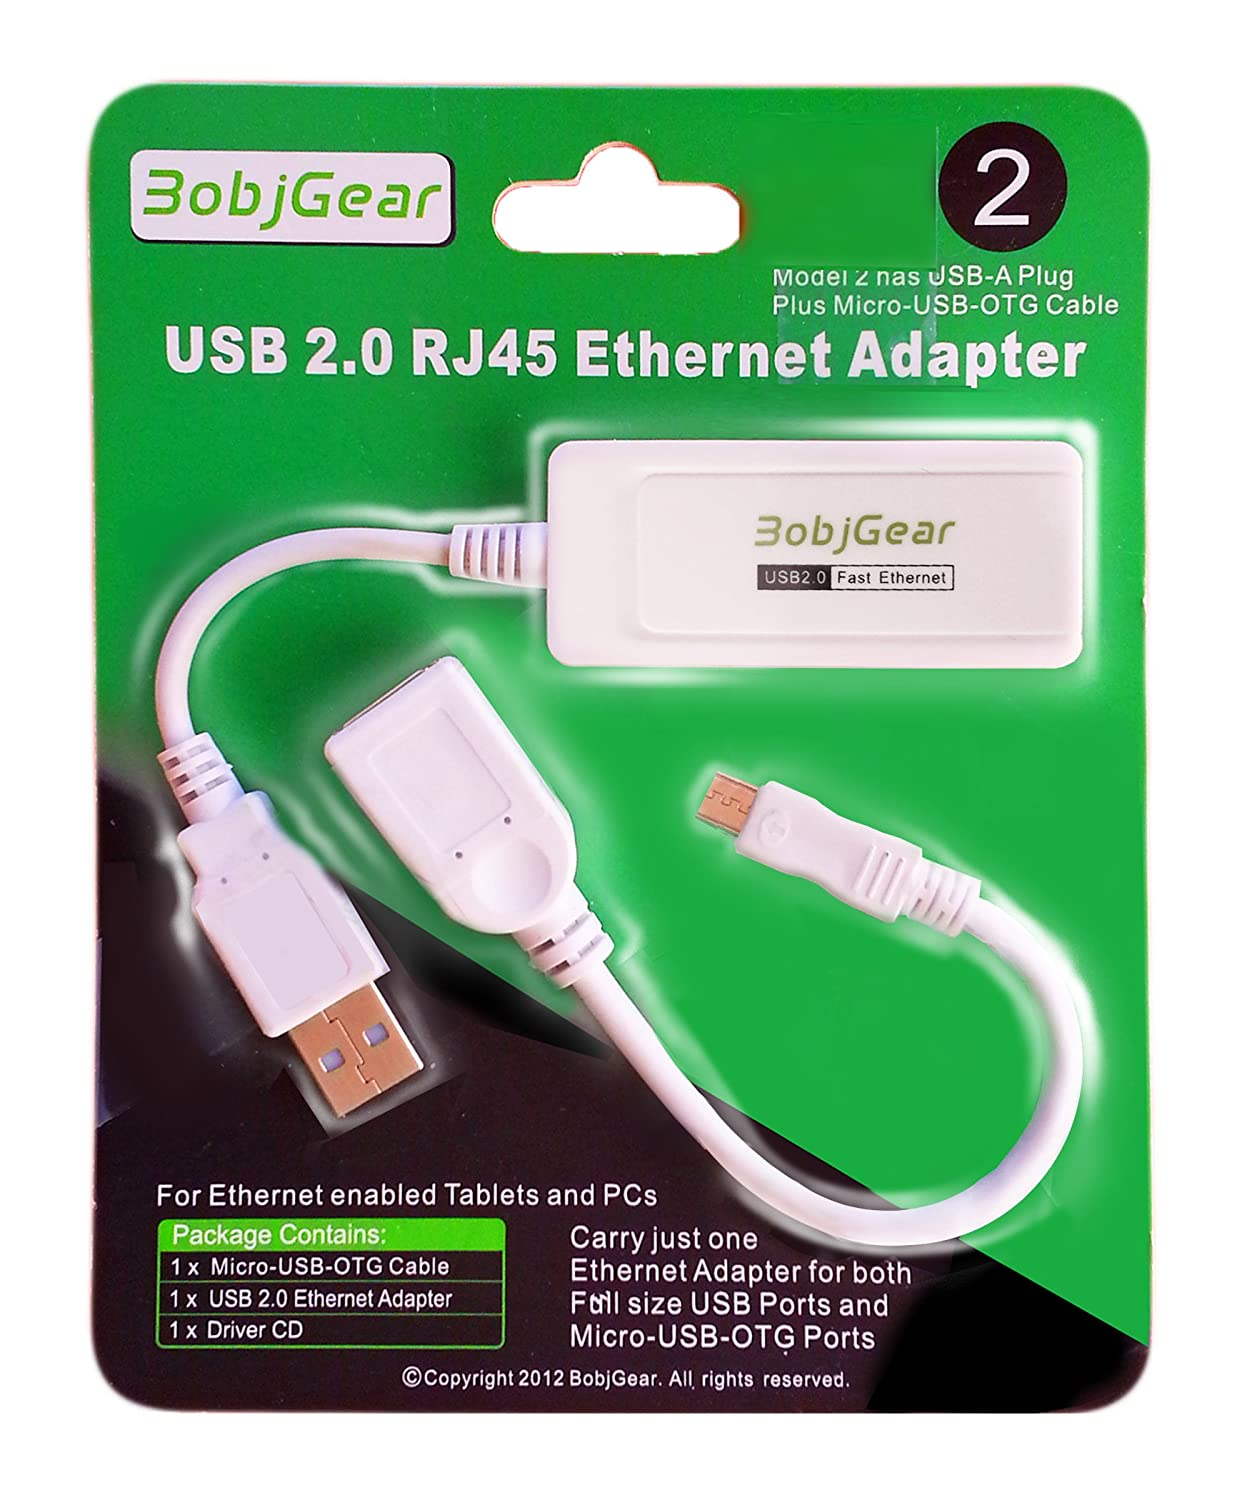 Bobjgear Usb To Rj45 Compact Fast Ethernet Adapter For House Wiring Android Tablets Chromebooks Ultrabooks Windows Linux Mac Chrome Os